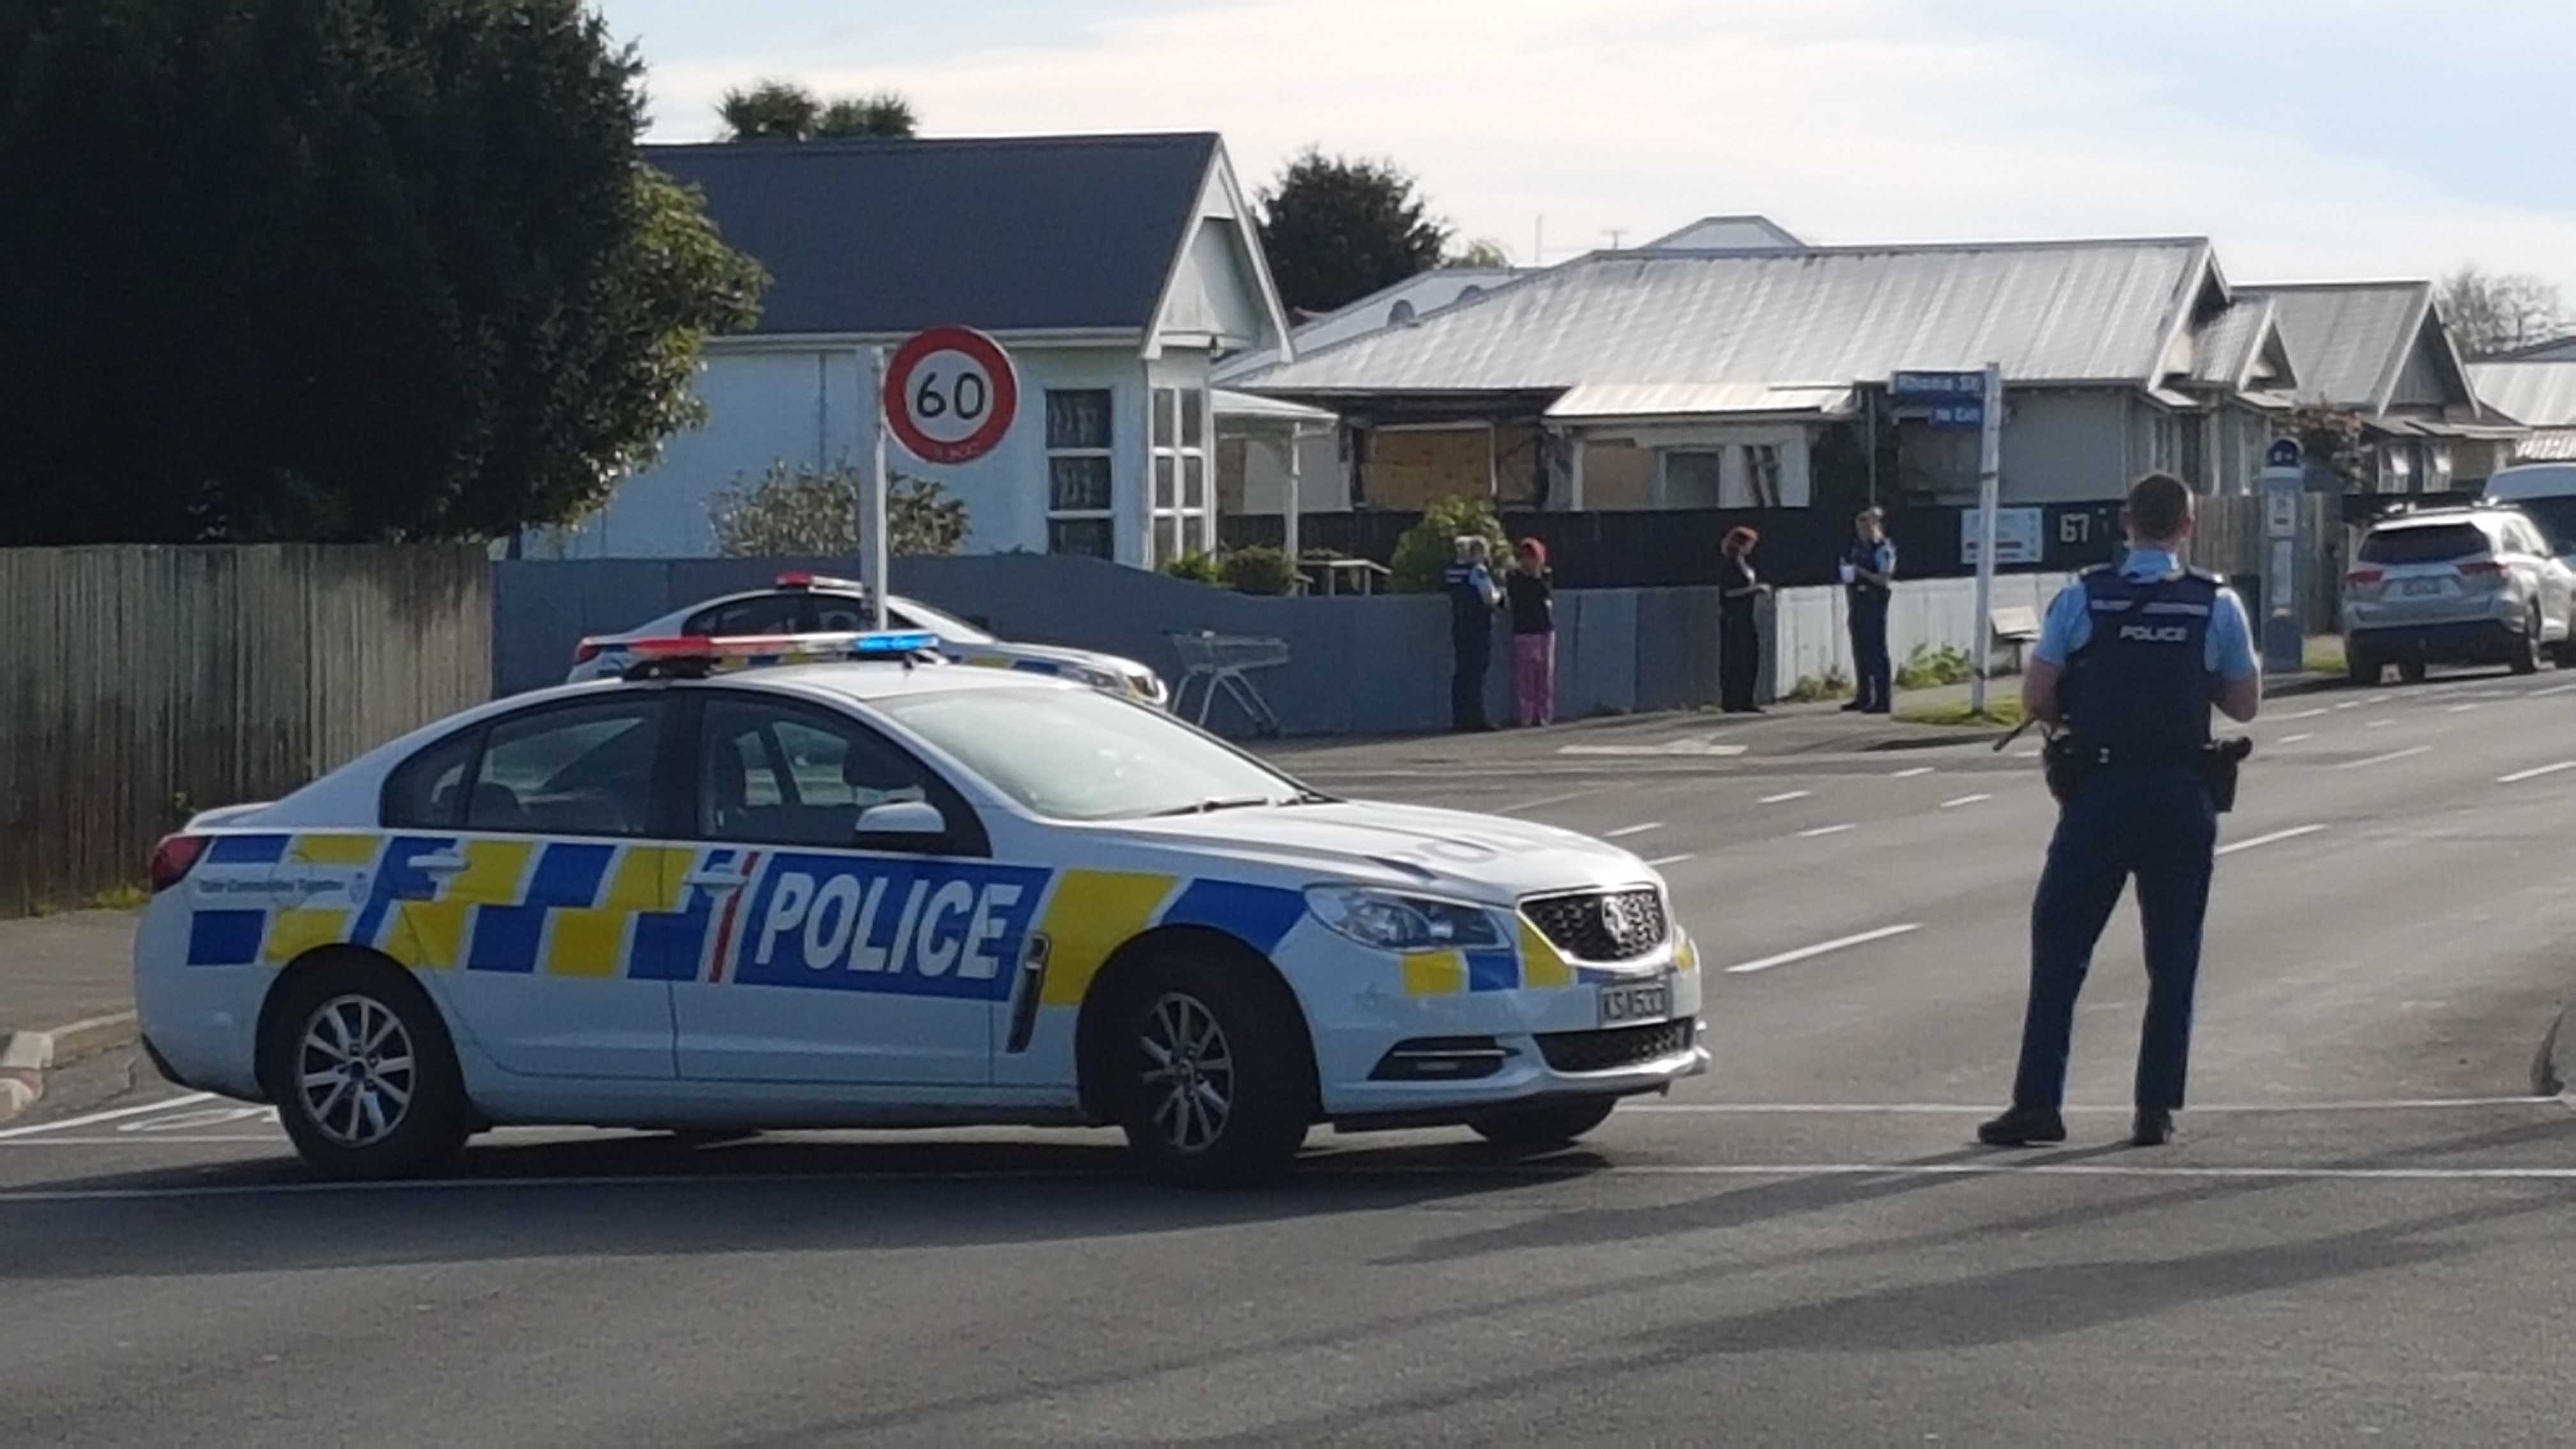 Armed police were called to Buckleys Rd in Linwood about 8am. Photo: Geoff Sloan